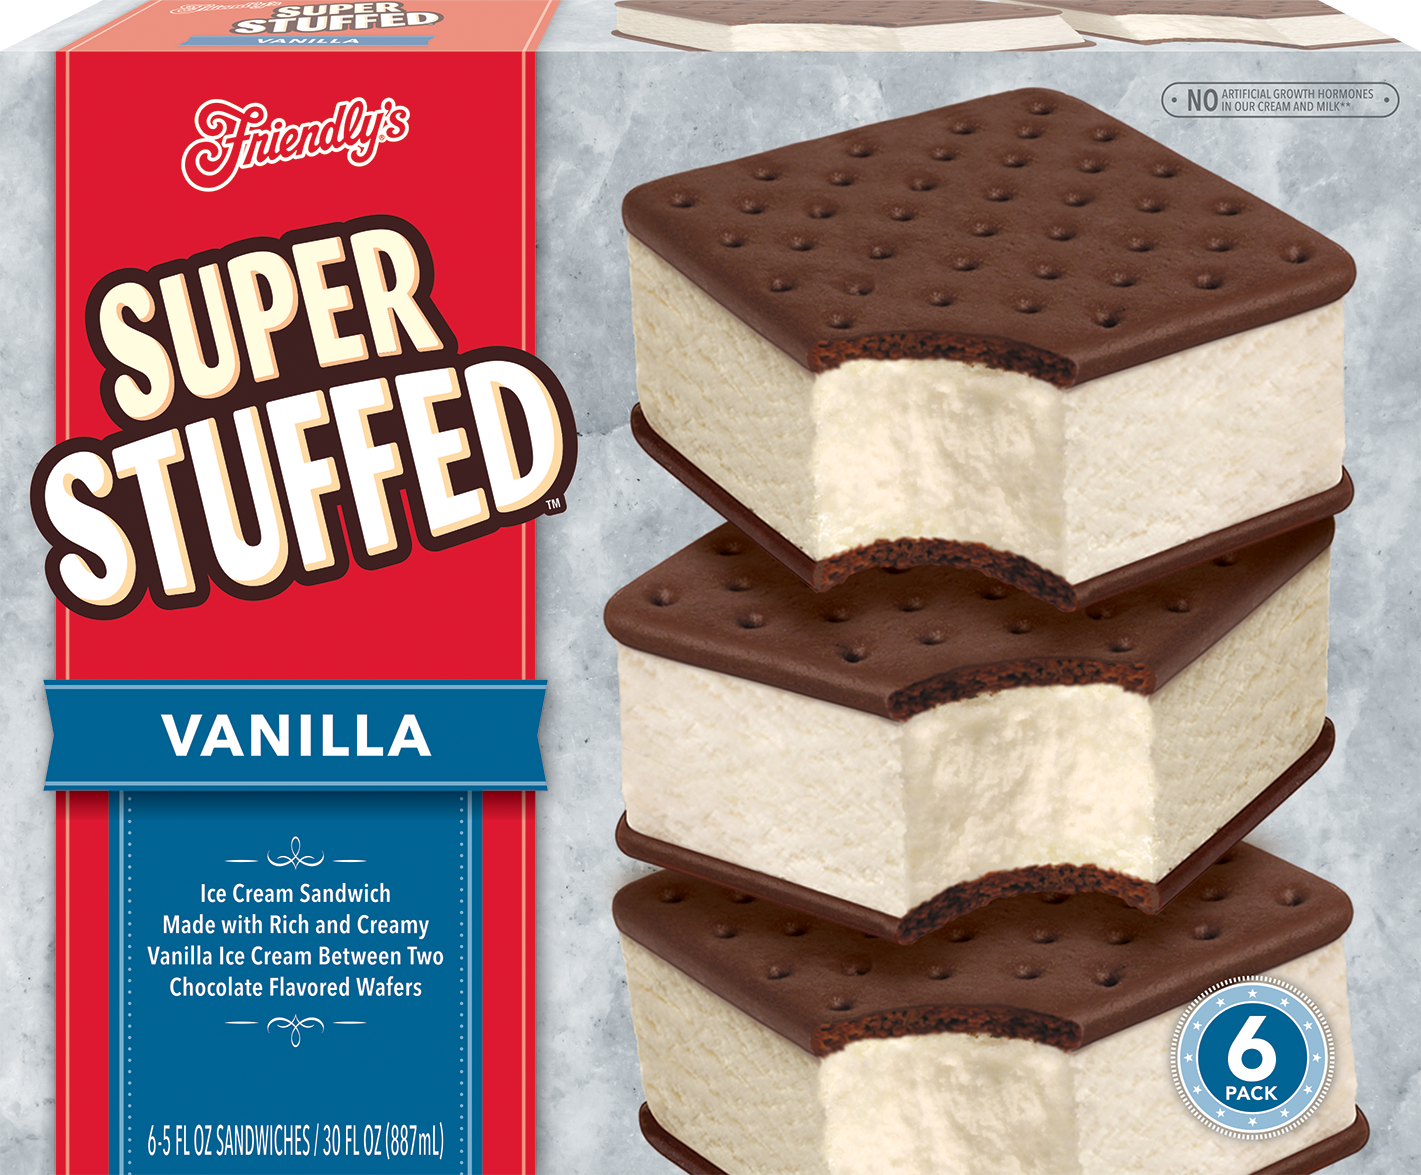 Vanilla Super Stuffed